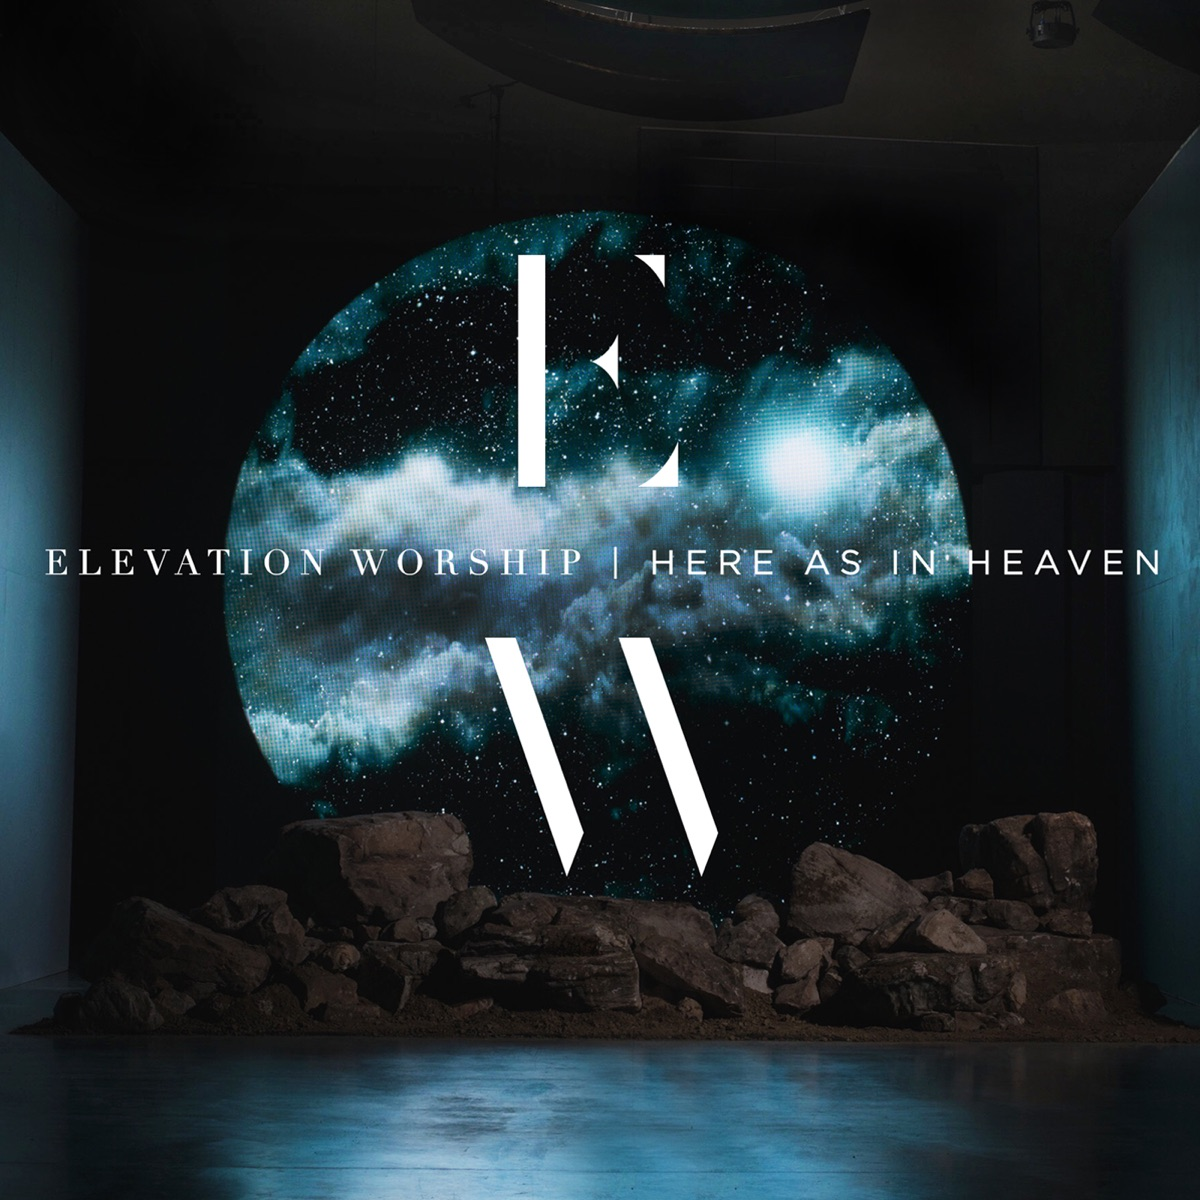 Here as in Heaven Live Elevation Worship CD cover